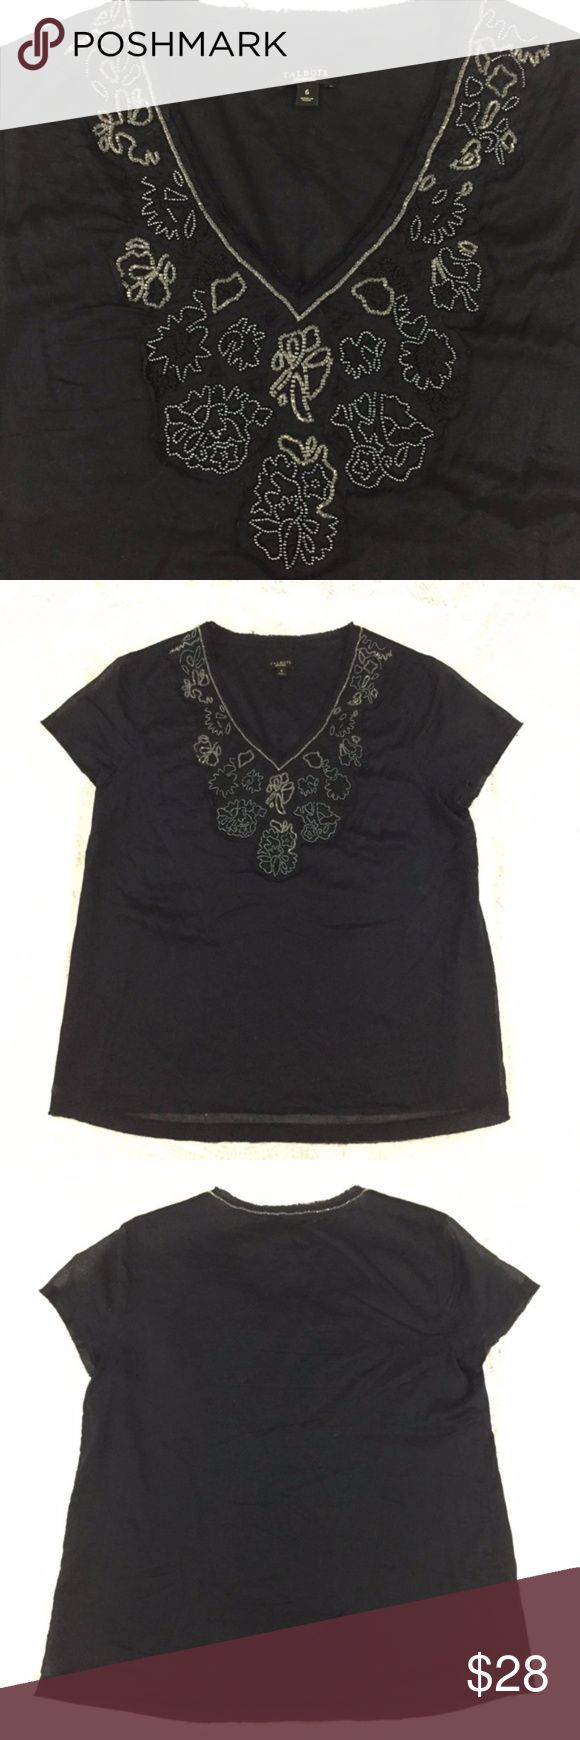 """EUC Talbots Blue Floral Beaded Navy Cotton Top, 6 EUC Talbots Blue Floral Beaded Navy Cotton Top, 6 Beautiful cotton navy short sleeve top. Features a stunning beaded design around the rough edge v neck. 100% Cotton. Machine washable. Measurements: Flat Lay Chest:18"""" Shoulder to hem: 24"""" Talbots Tops Blouses"""